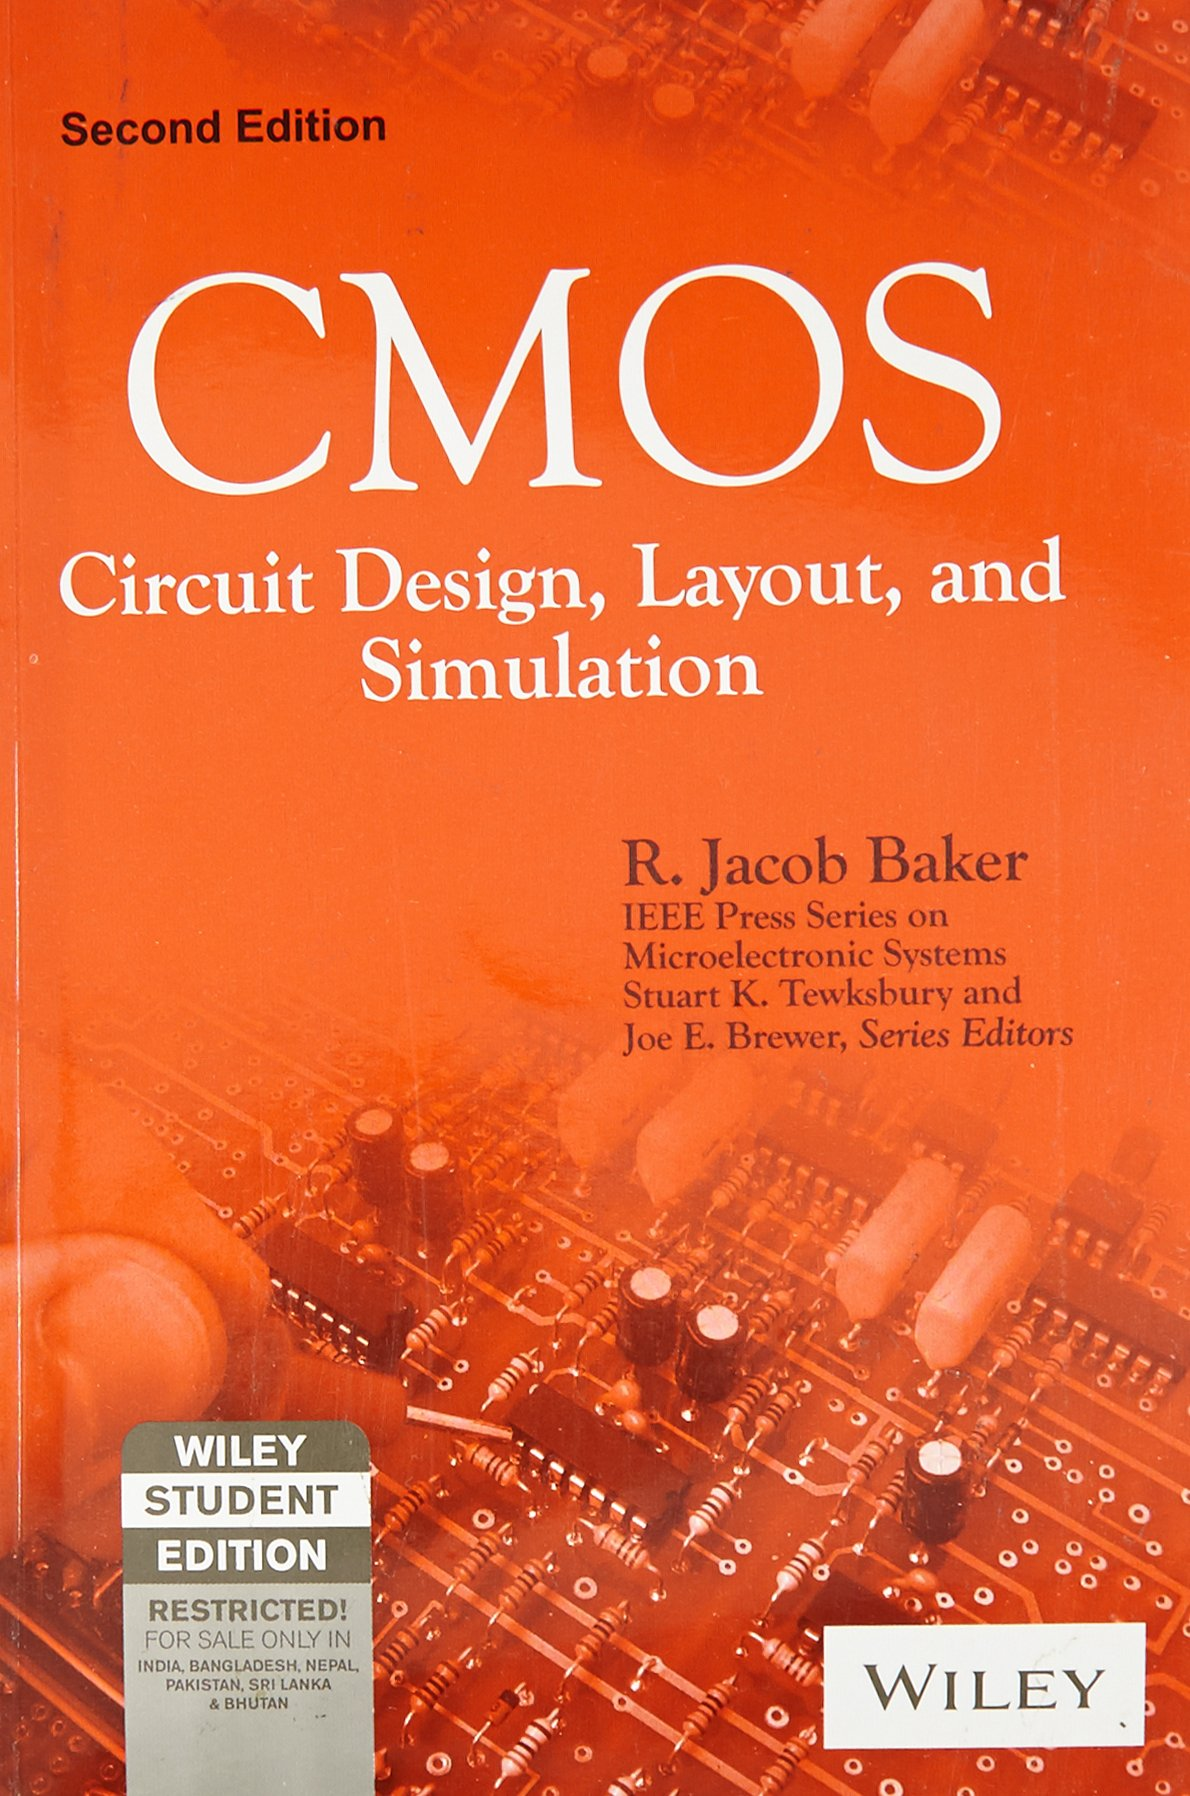 Buy Cmos Circuit Design Layout And Simulation Book Online At Low High Voltage Yard Training Simulator Prices In India Reviews Ratings Amazon